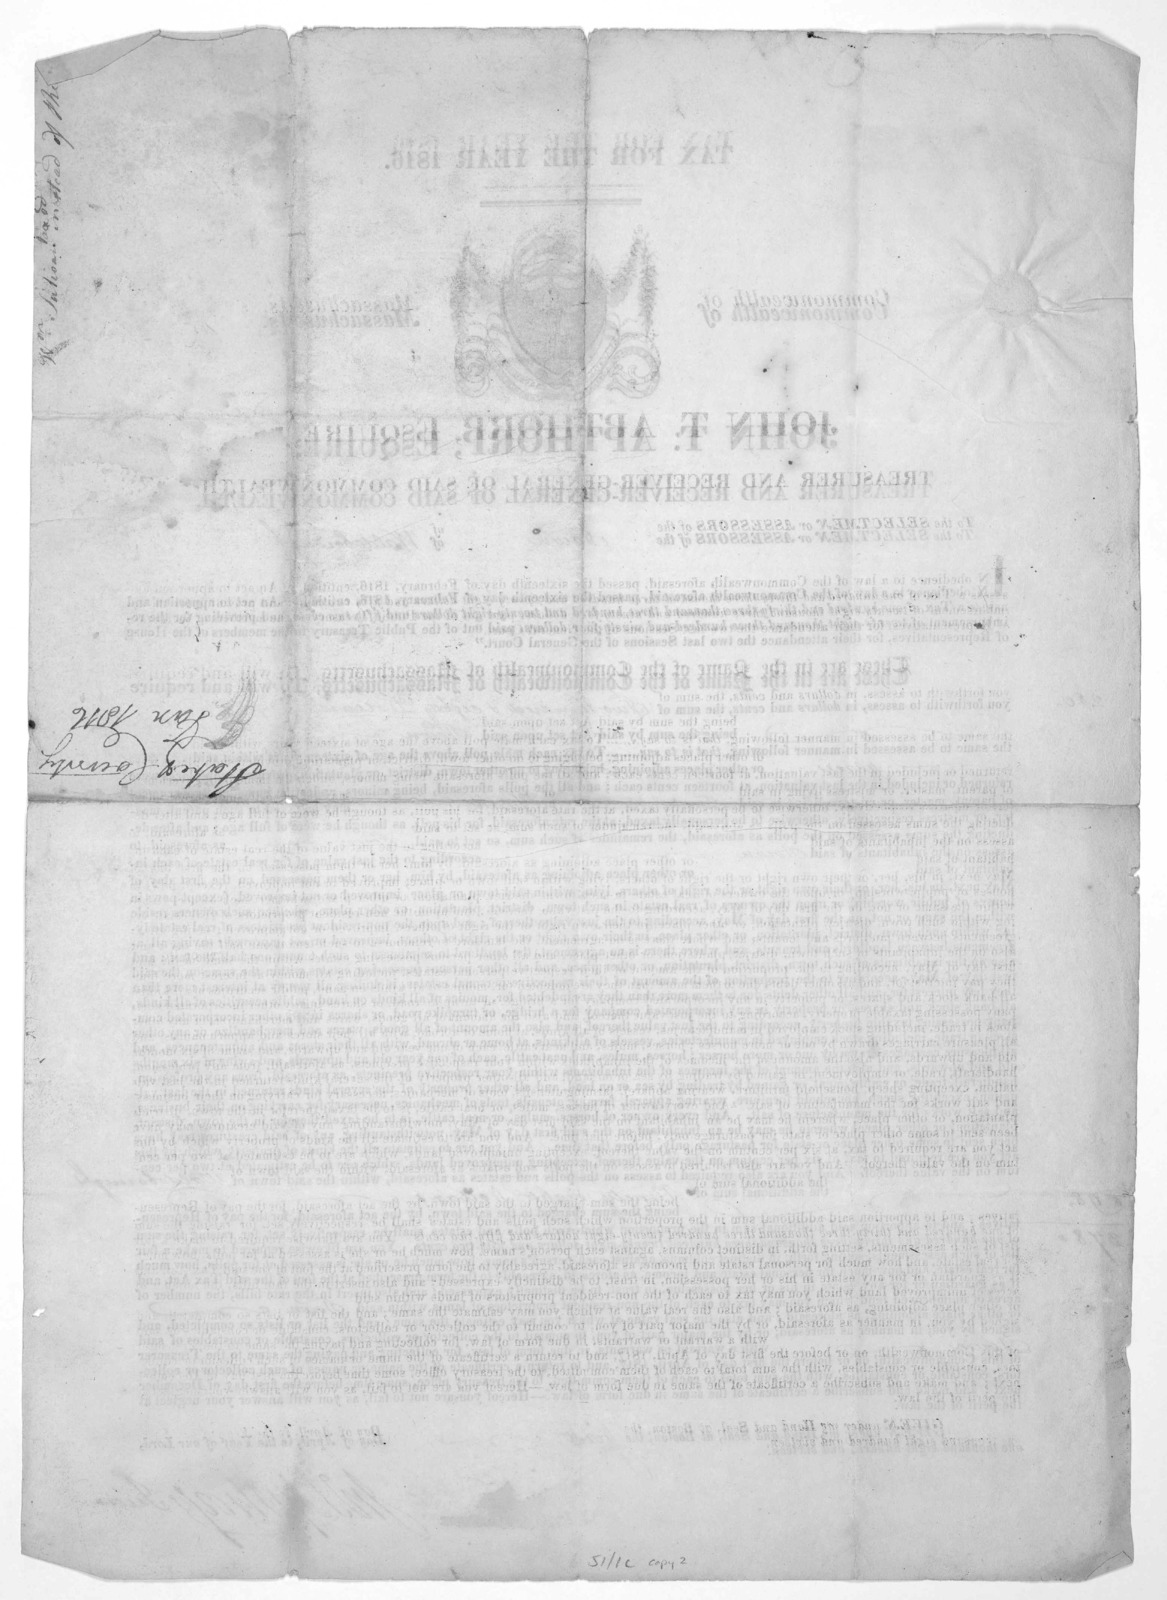 Tax for the year 1816. Commonwealth of Massachusetts. John T. Apthorp, Esquire, Treasurer and Receiver-general of said Commonwealth. To the selectmen or assessors of the of ... Given under my hand and seal, at Boston, the day of April, in the ye